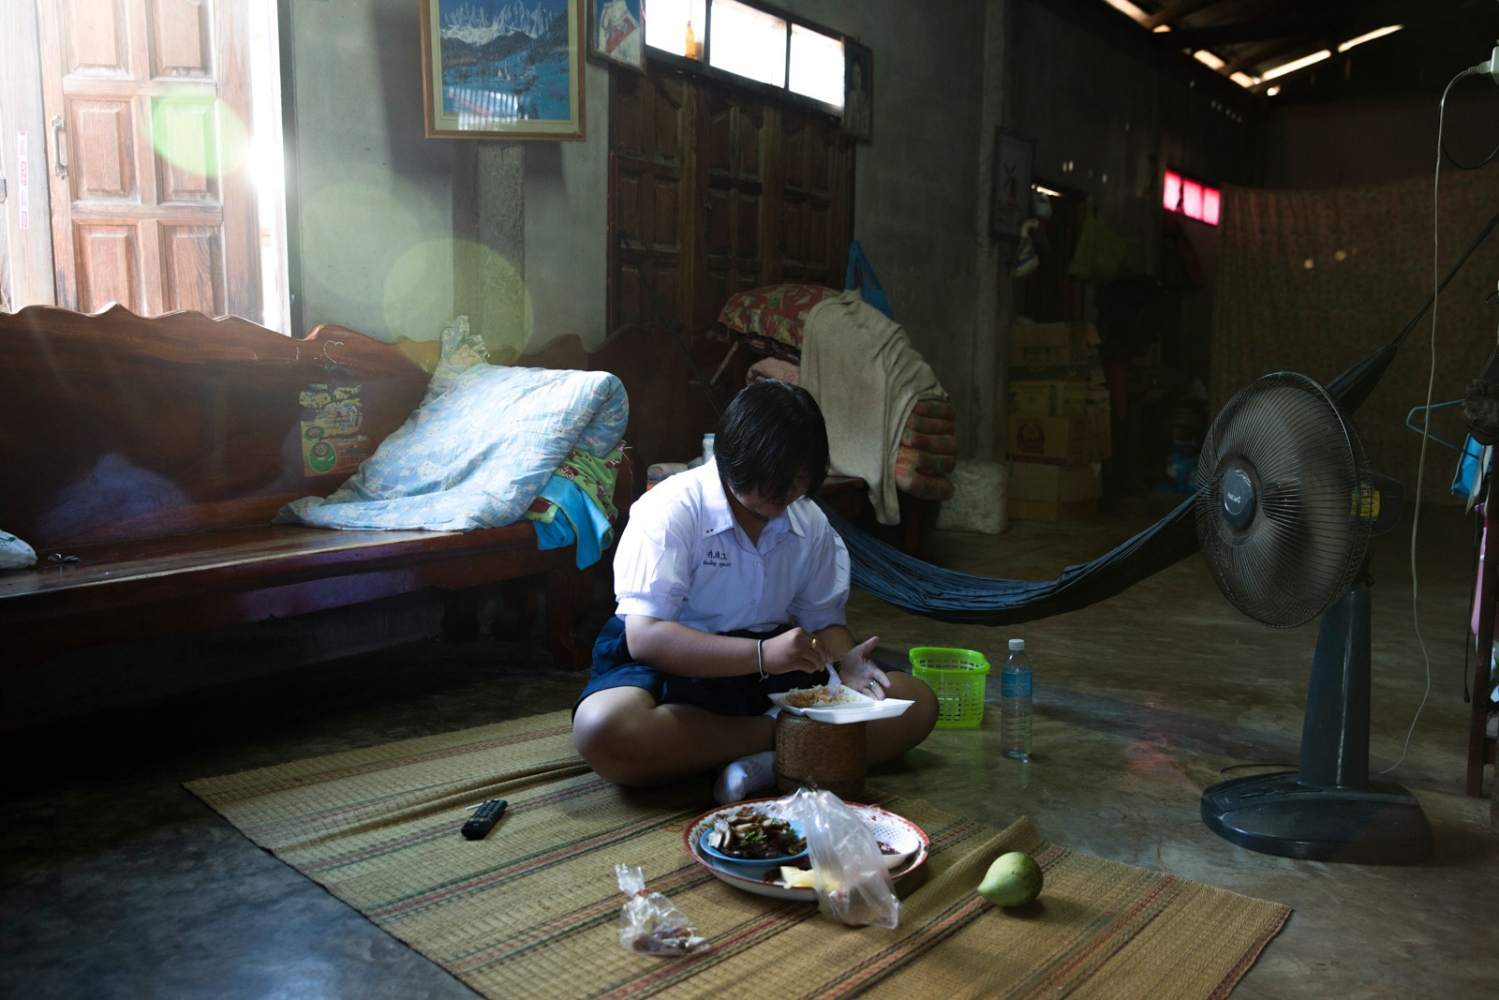 High-school student Wanpen Khunna, 17, sits in her house eating breakfast before school. When she was 15 she was sued by the mining company for narrating a Thai television documentary on the plight of the villages. The TV station was also sued.